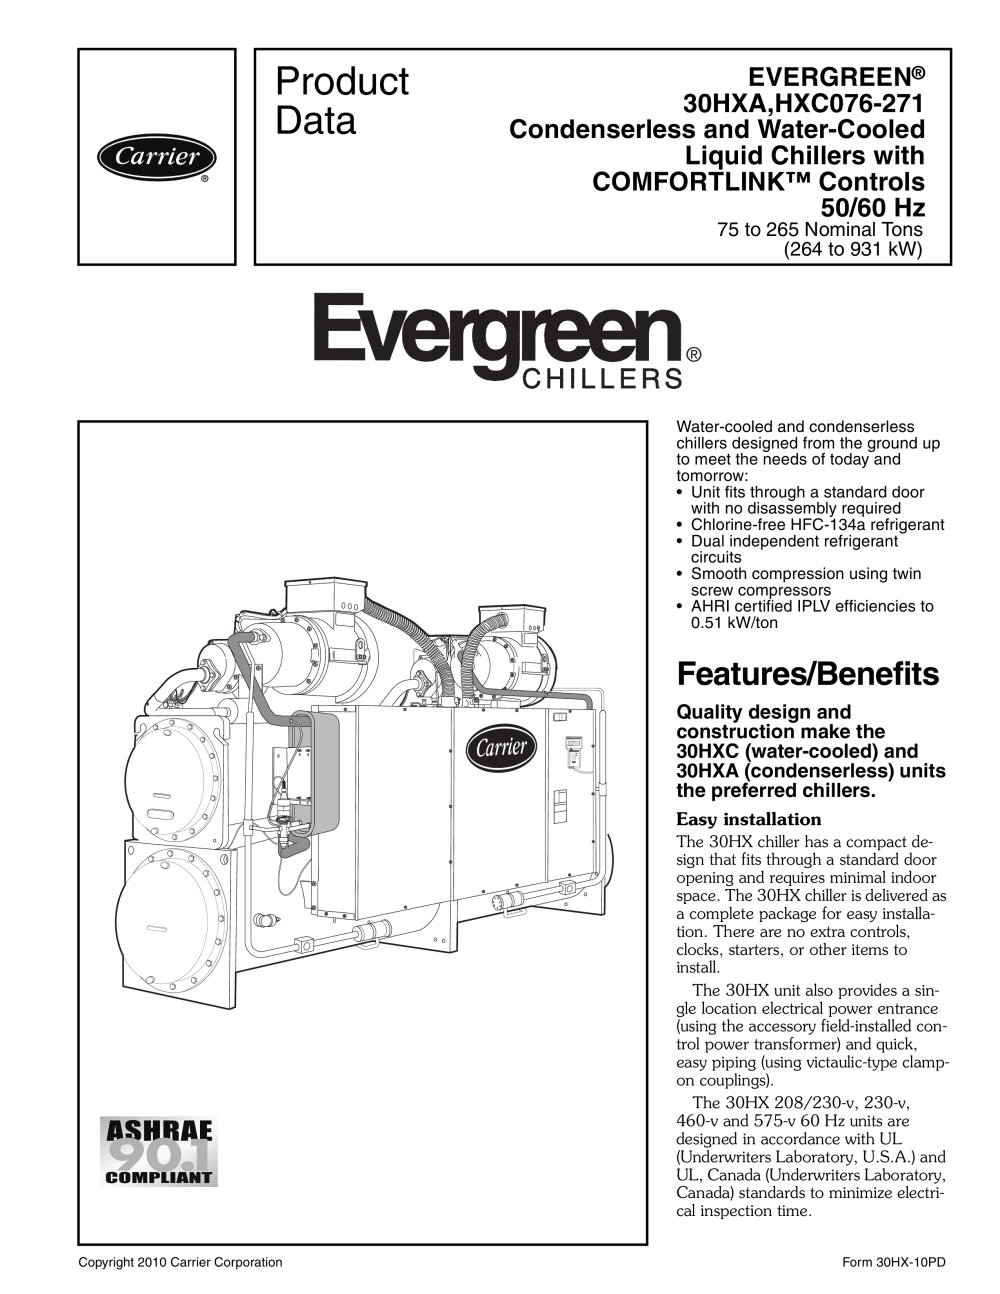 evergreen 30hxa hxc076 271 carrier commercial pdf catalogue rh pdf medicalexpo com carrier 30hxc chiller service manual HVAC Carrier Chiller Manuals